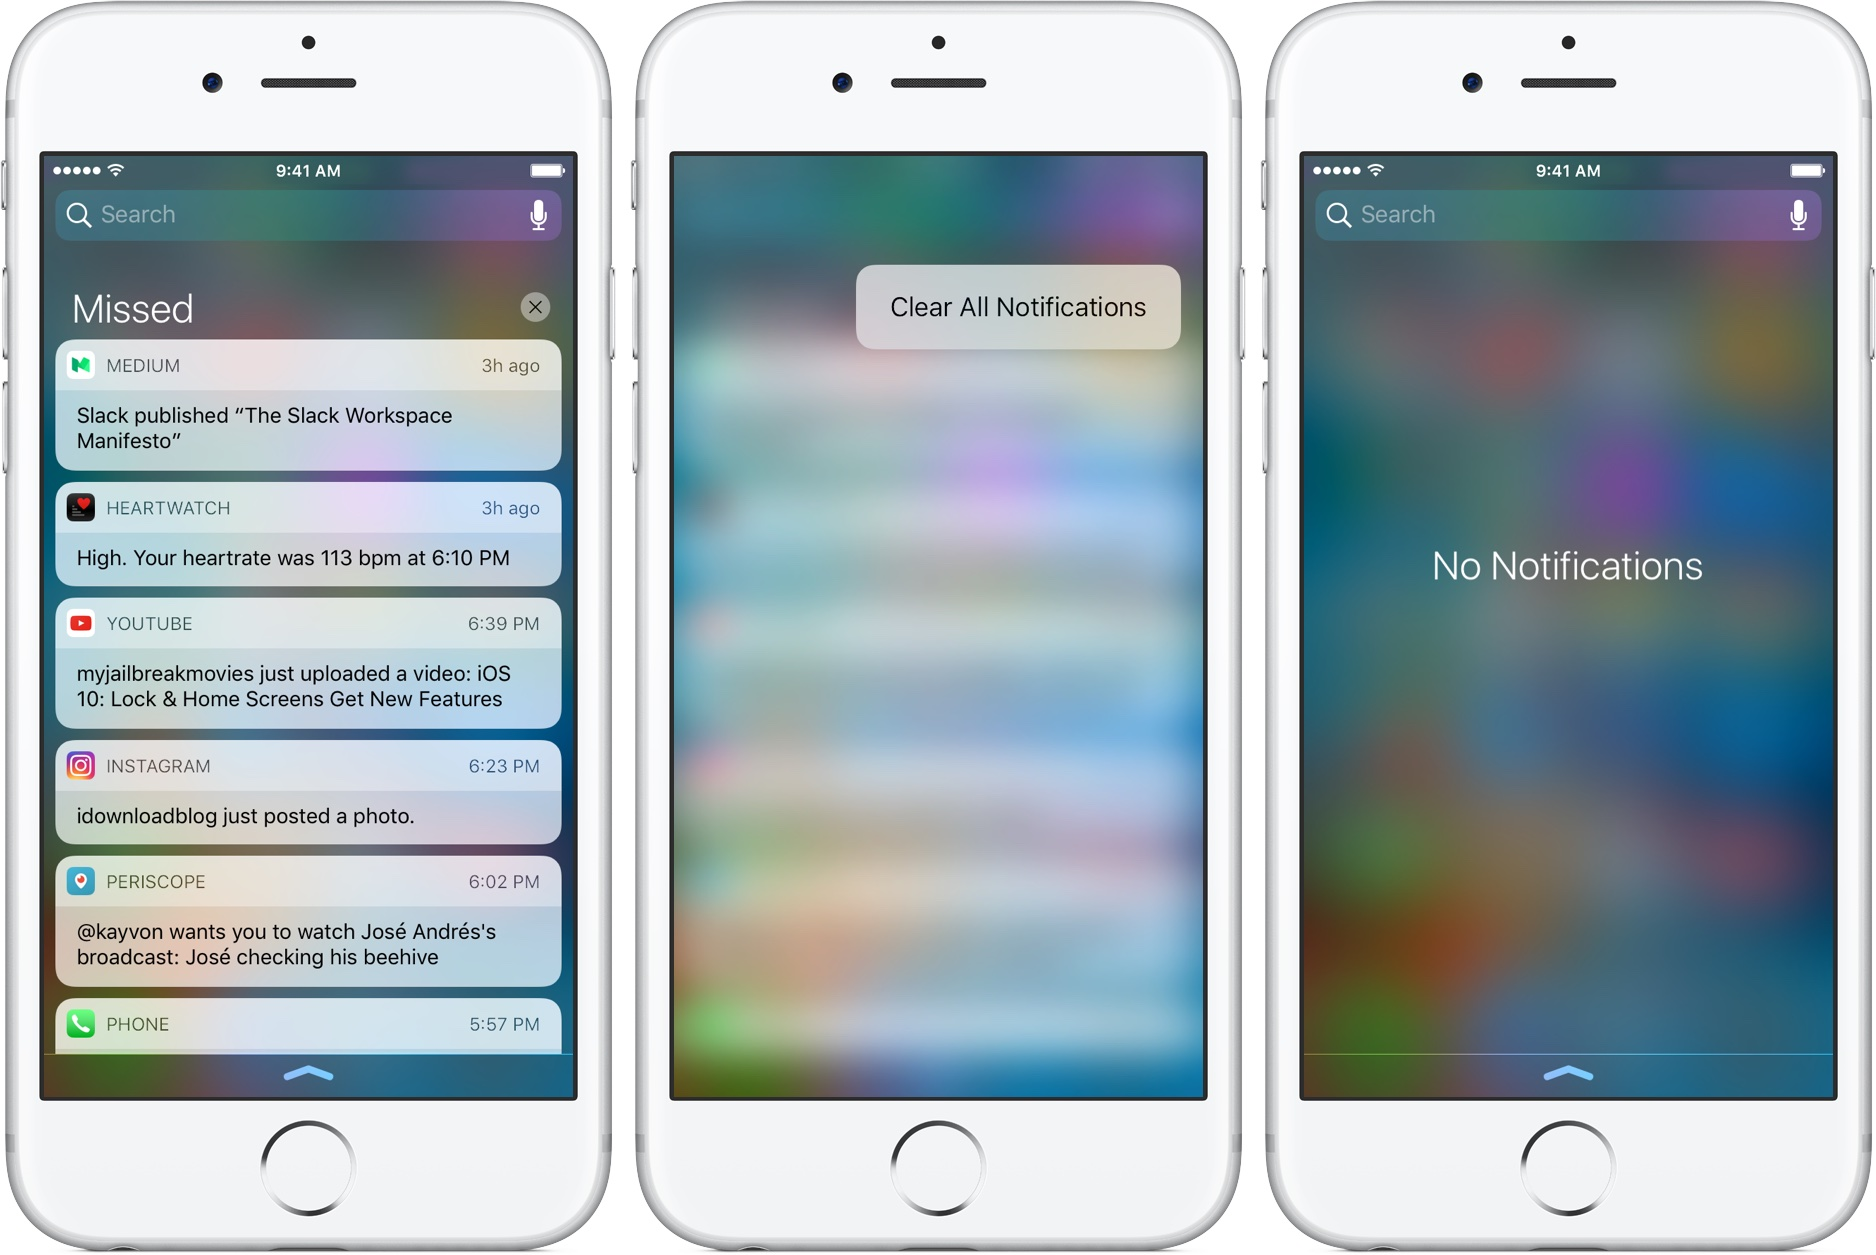 iOS 10 Bloqueo de pantalla Centro de notificaciones borrar todo 3D Touch iPhone captura de pantalla 001